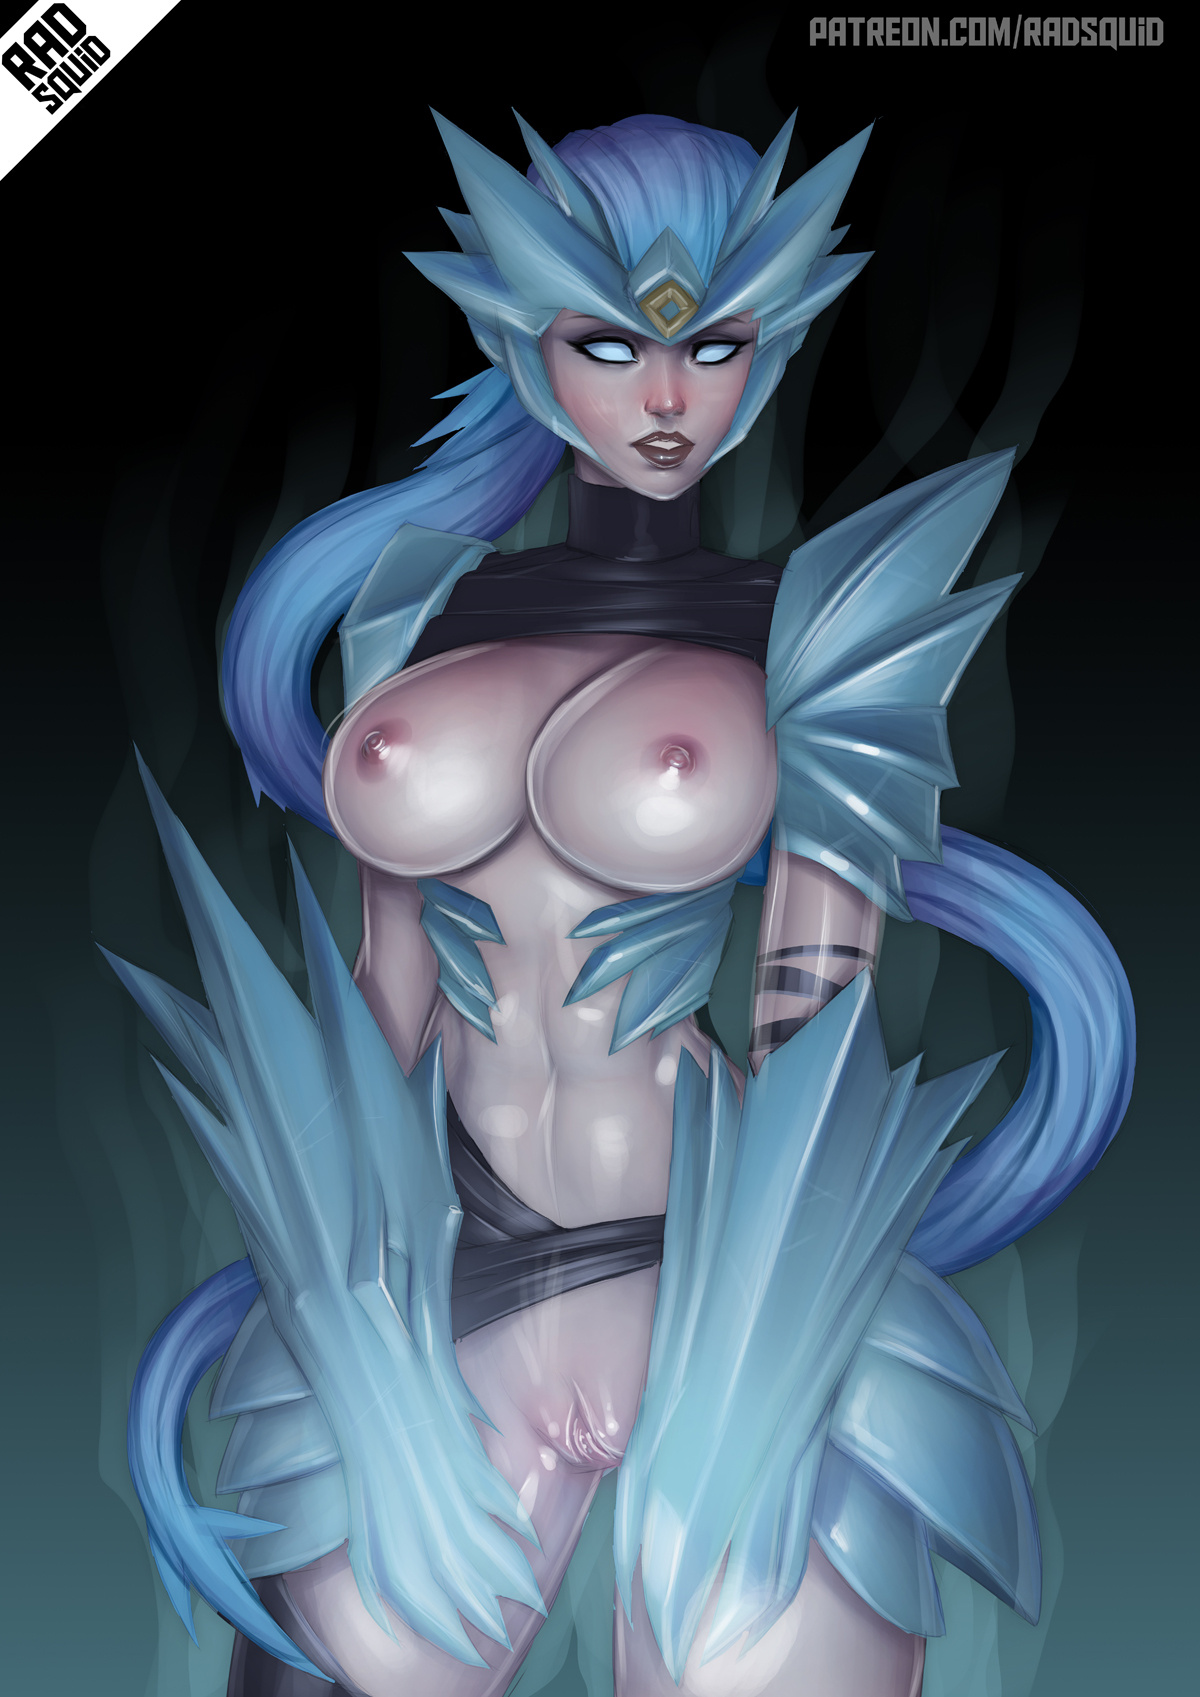 2501327 - League_of_Legends Shyvana the-essential-squid